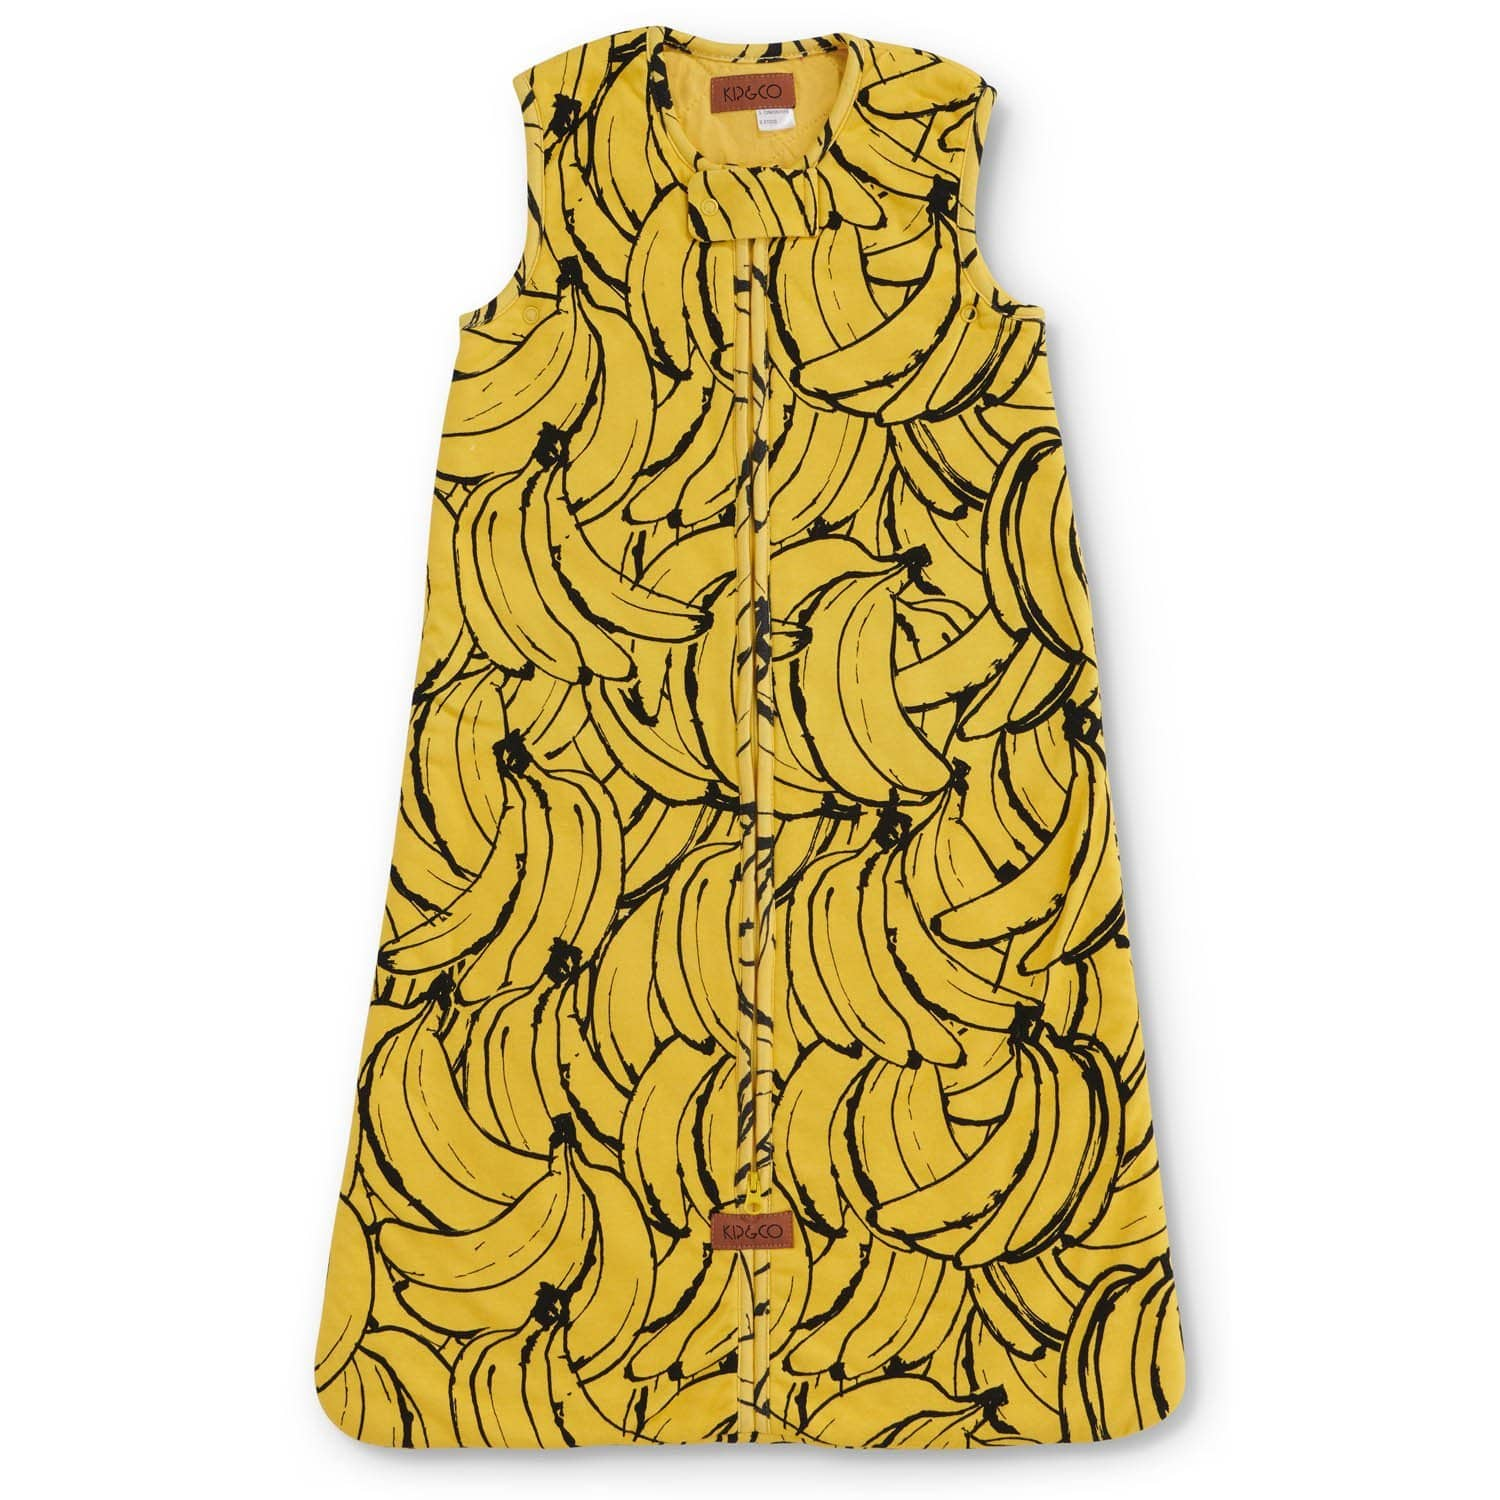 Kip&Co Sleep Bag 2.5 TOG - Bananas